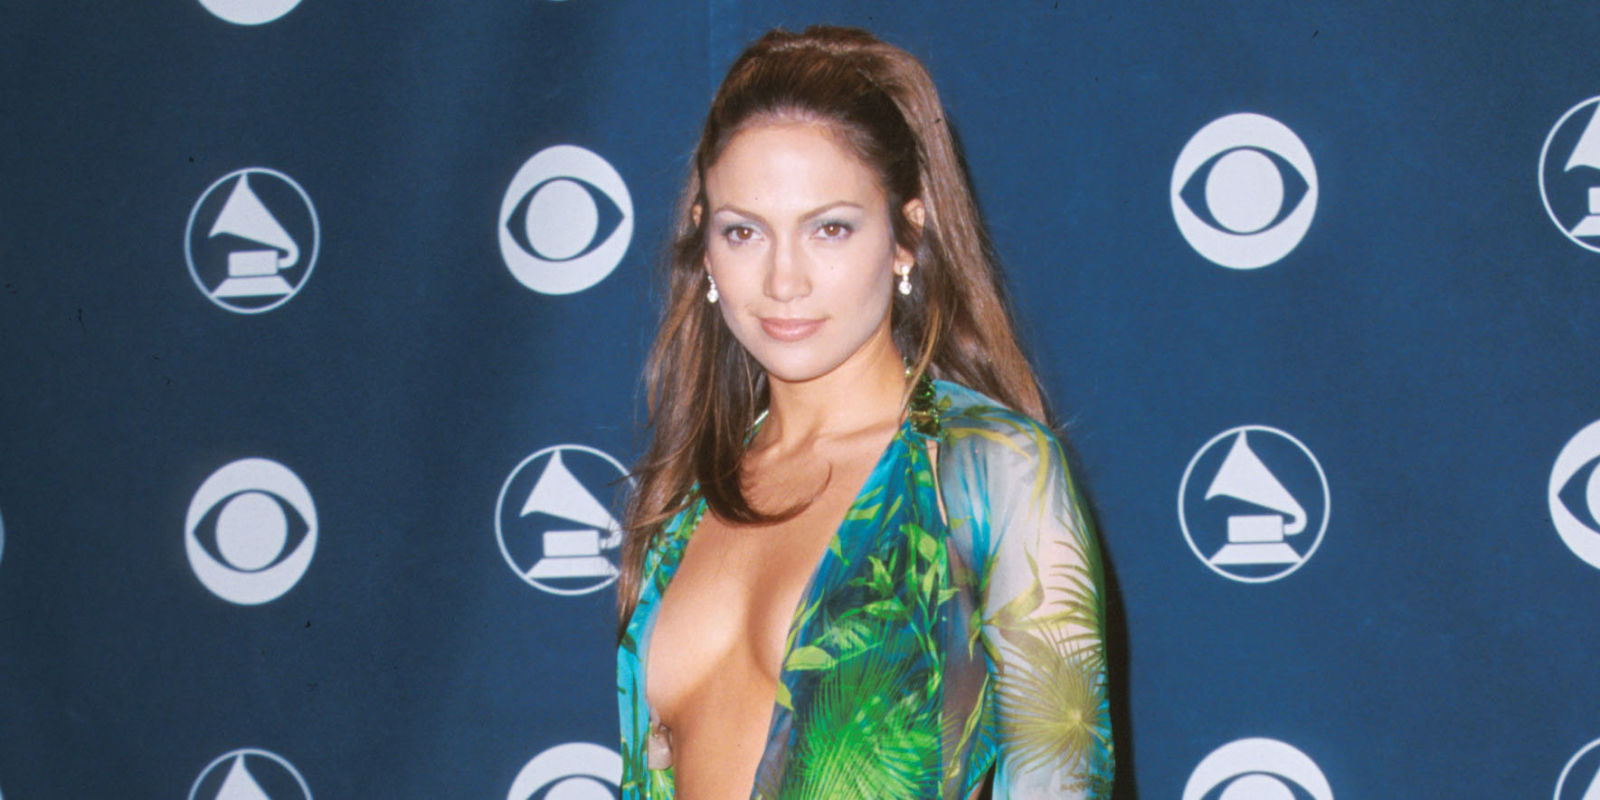 9 Secrets You Never Knew About Google From J Lo S Hidden